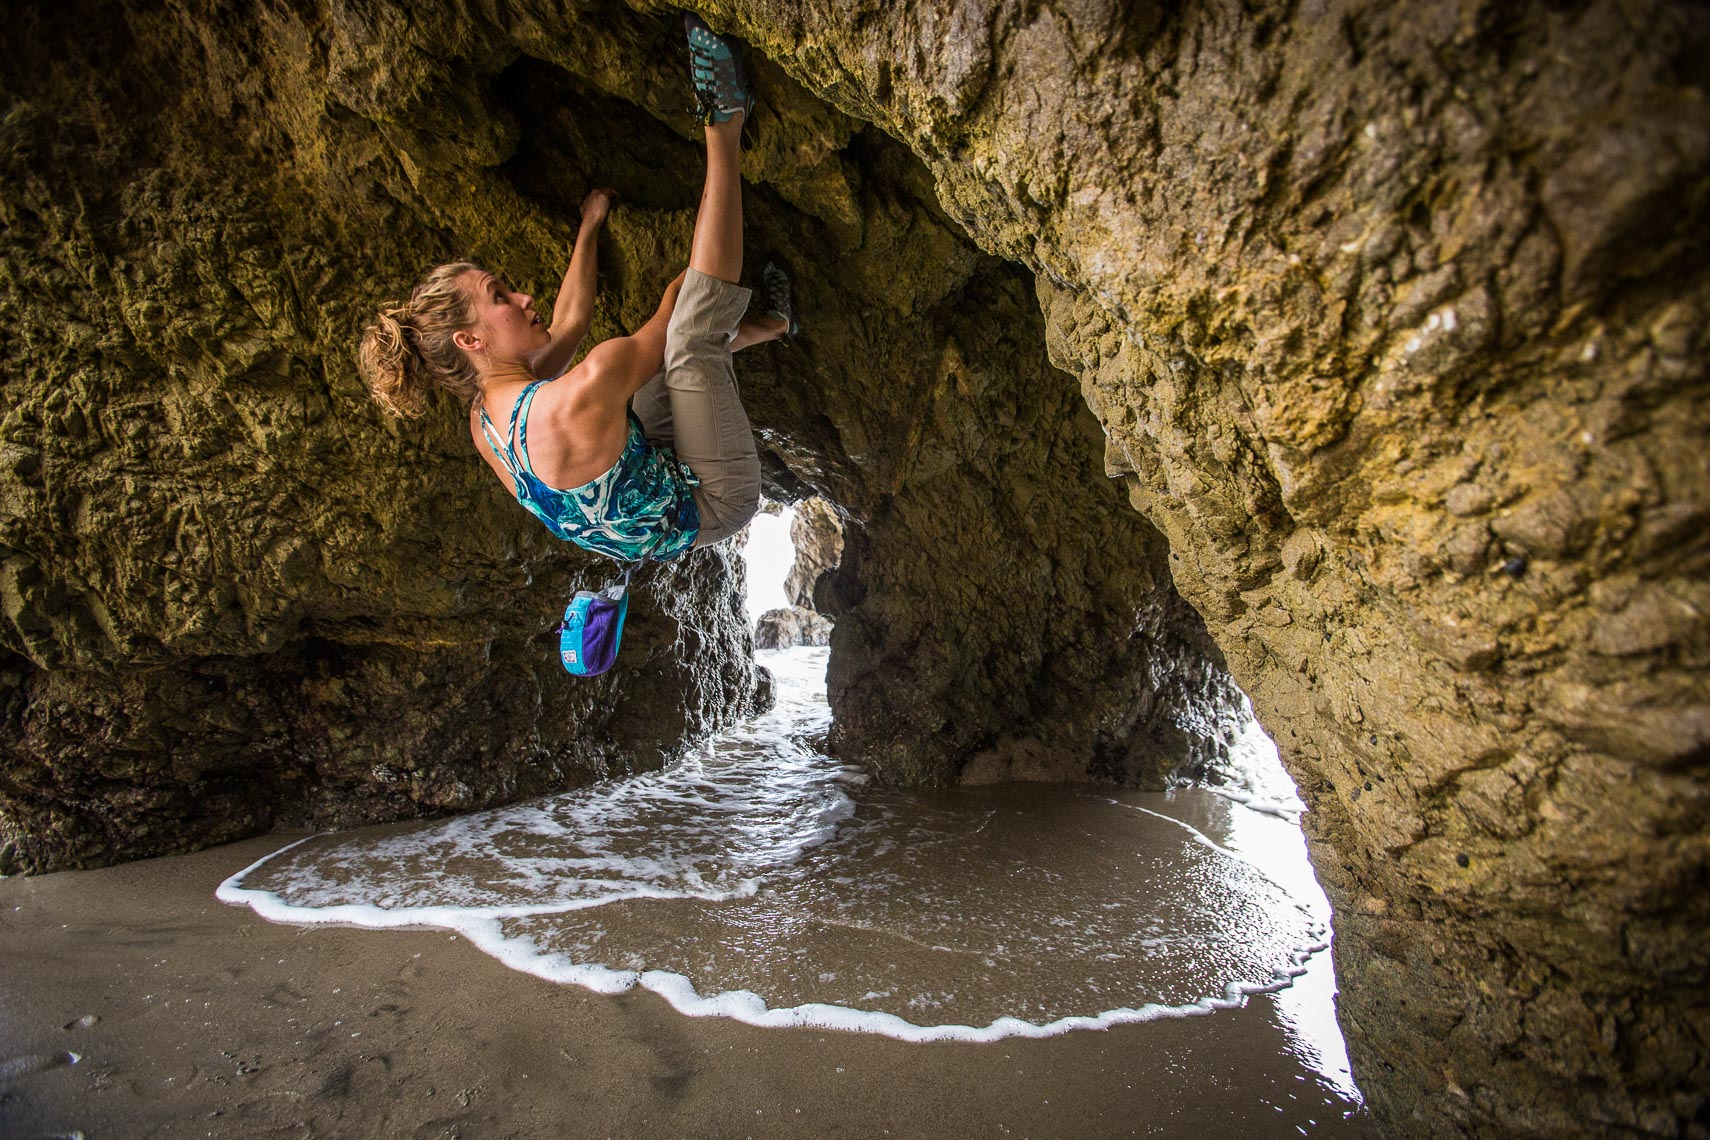 Bouldering on the California Coast